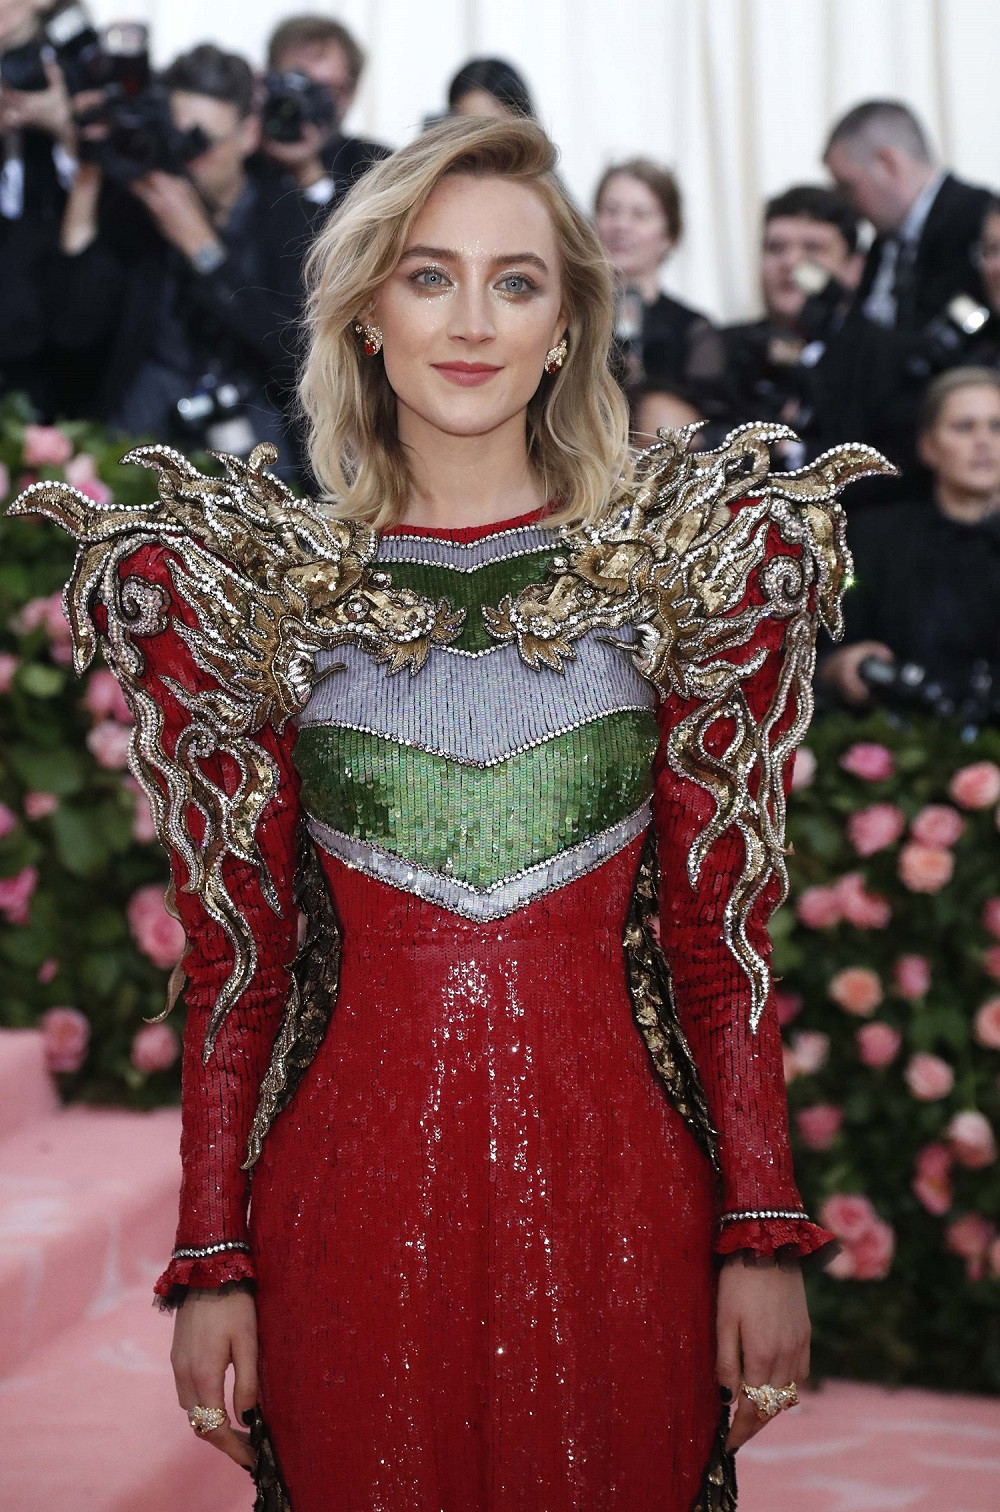 Saoirse Ronan at the Metropolitan Museum of Art Costume Institute Gala in New York City, US, on May 6, 2019.